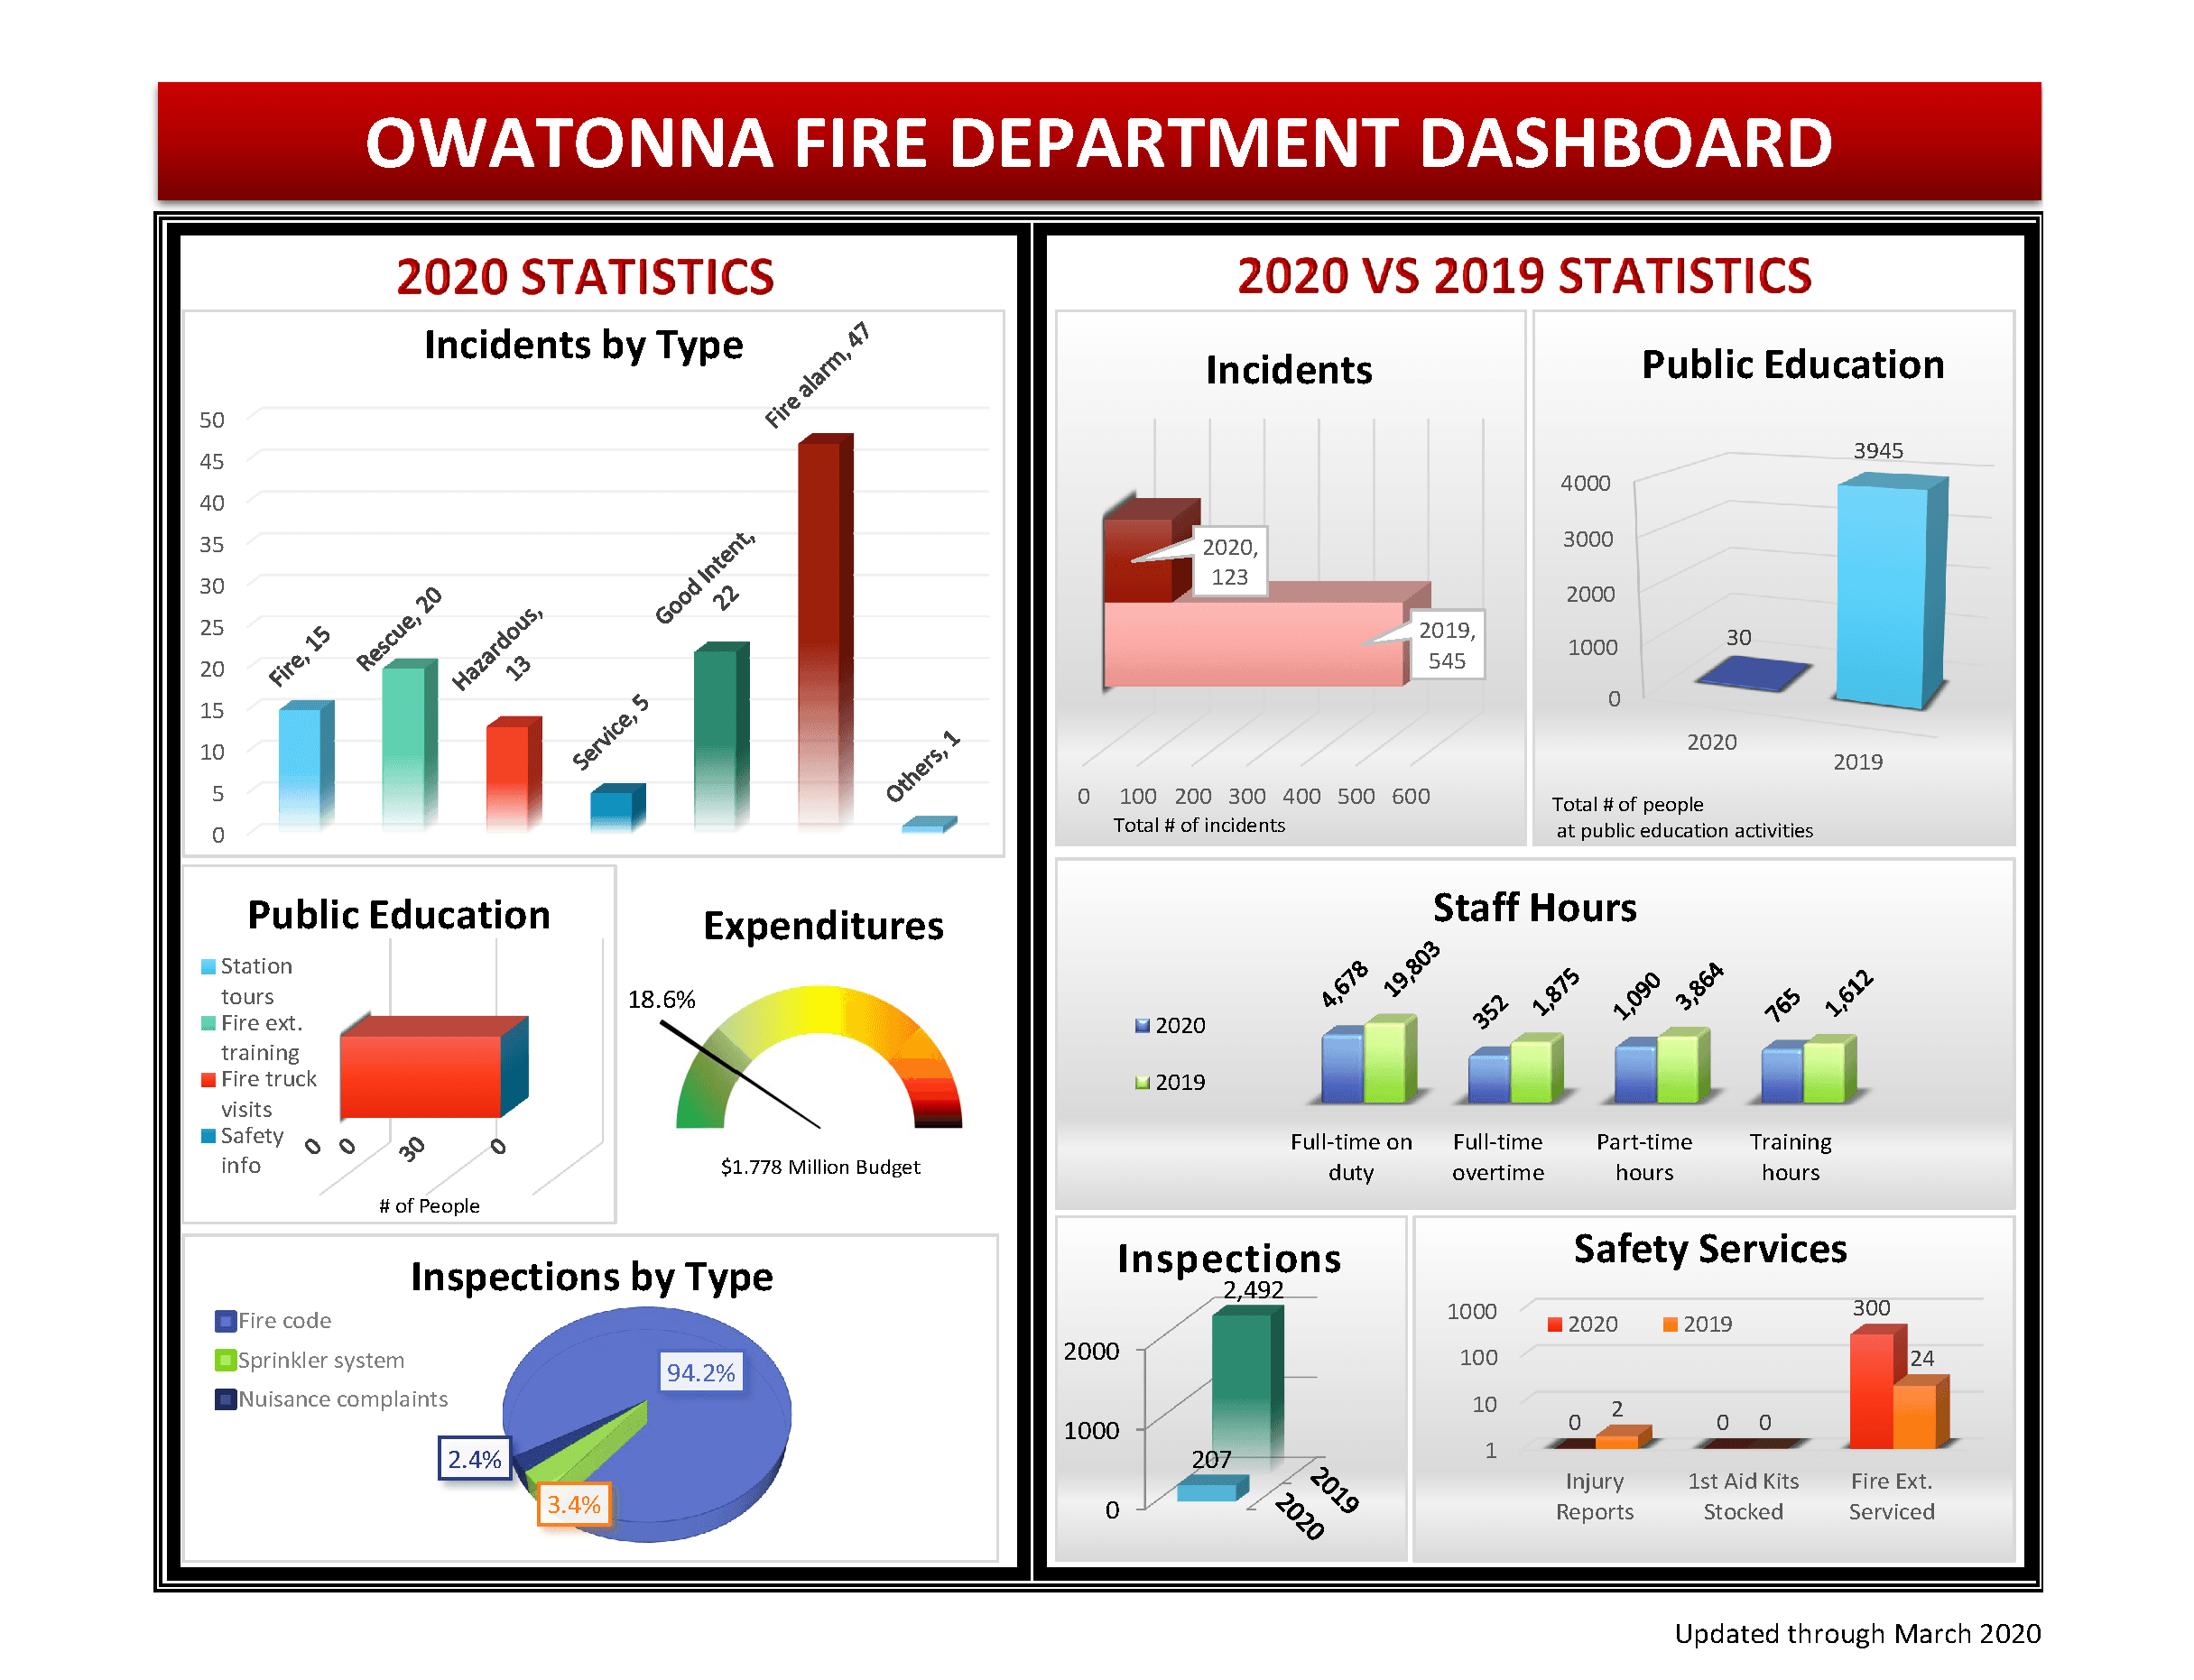 Fire Department Dashboard as of March 31, 2020